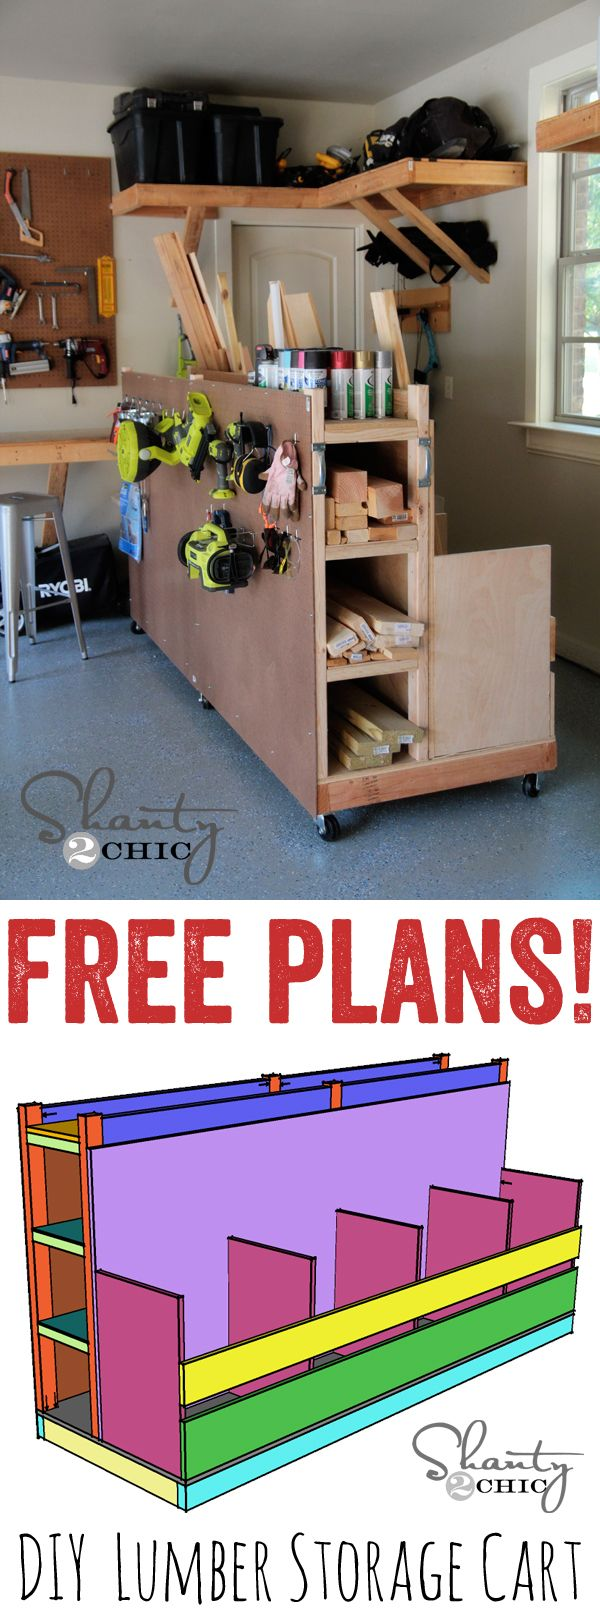 DIY Lumber Storage Cart Free Plans... I need this in my garage!  LOVE.  www.shanty-2-chic.com